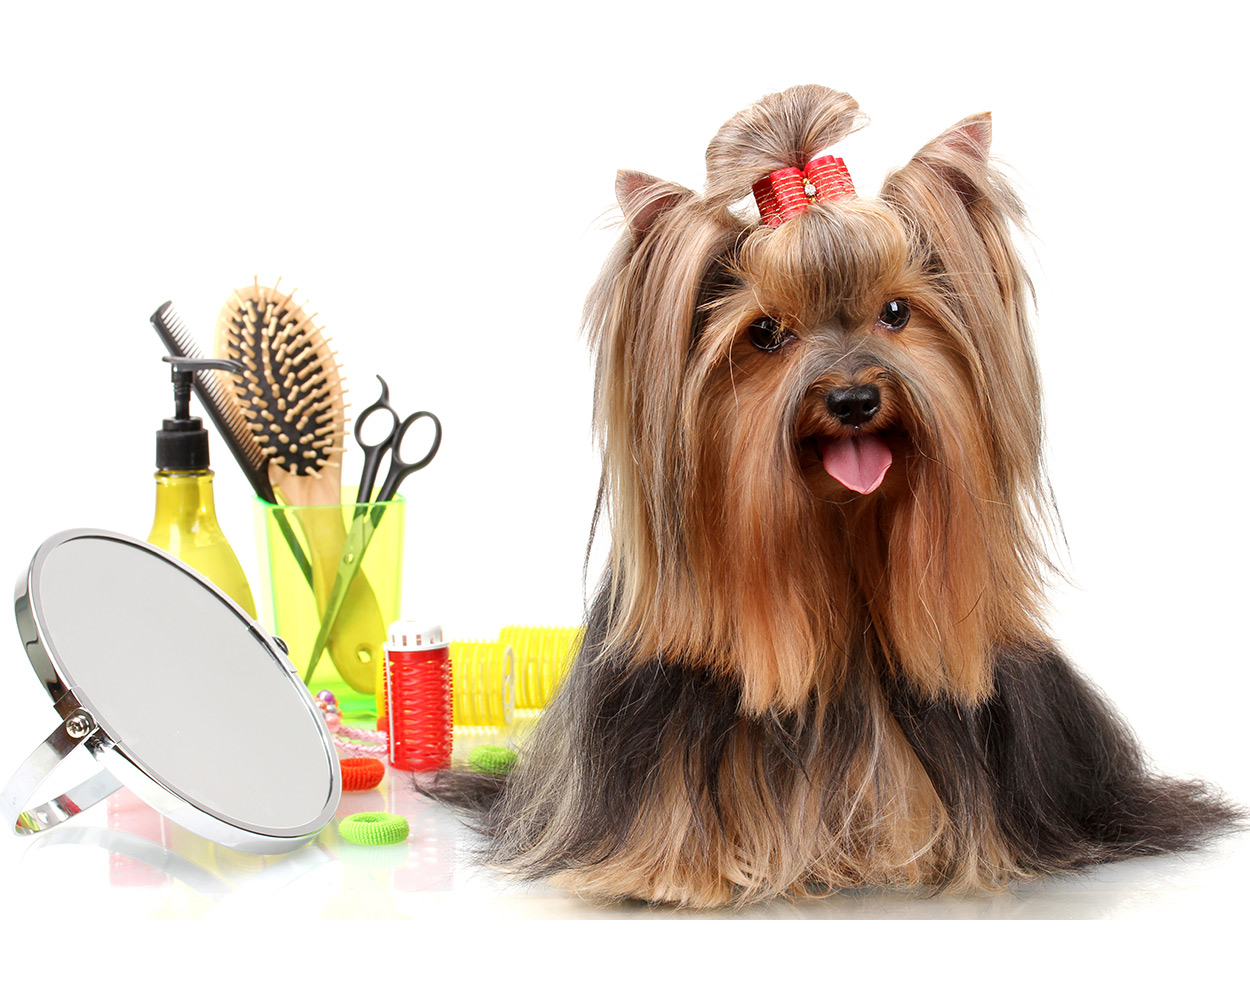 yorkie grooming, long haired dogs